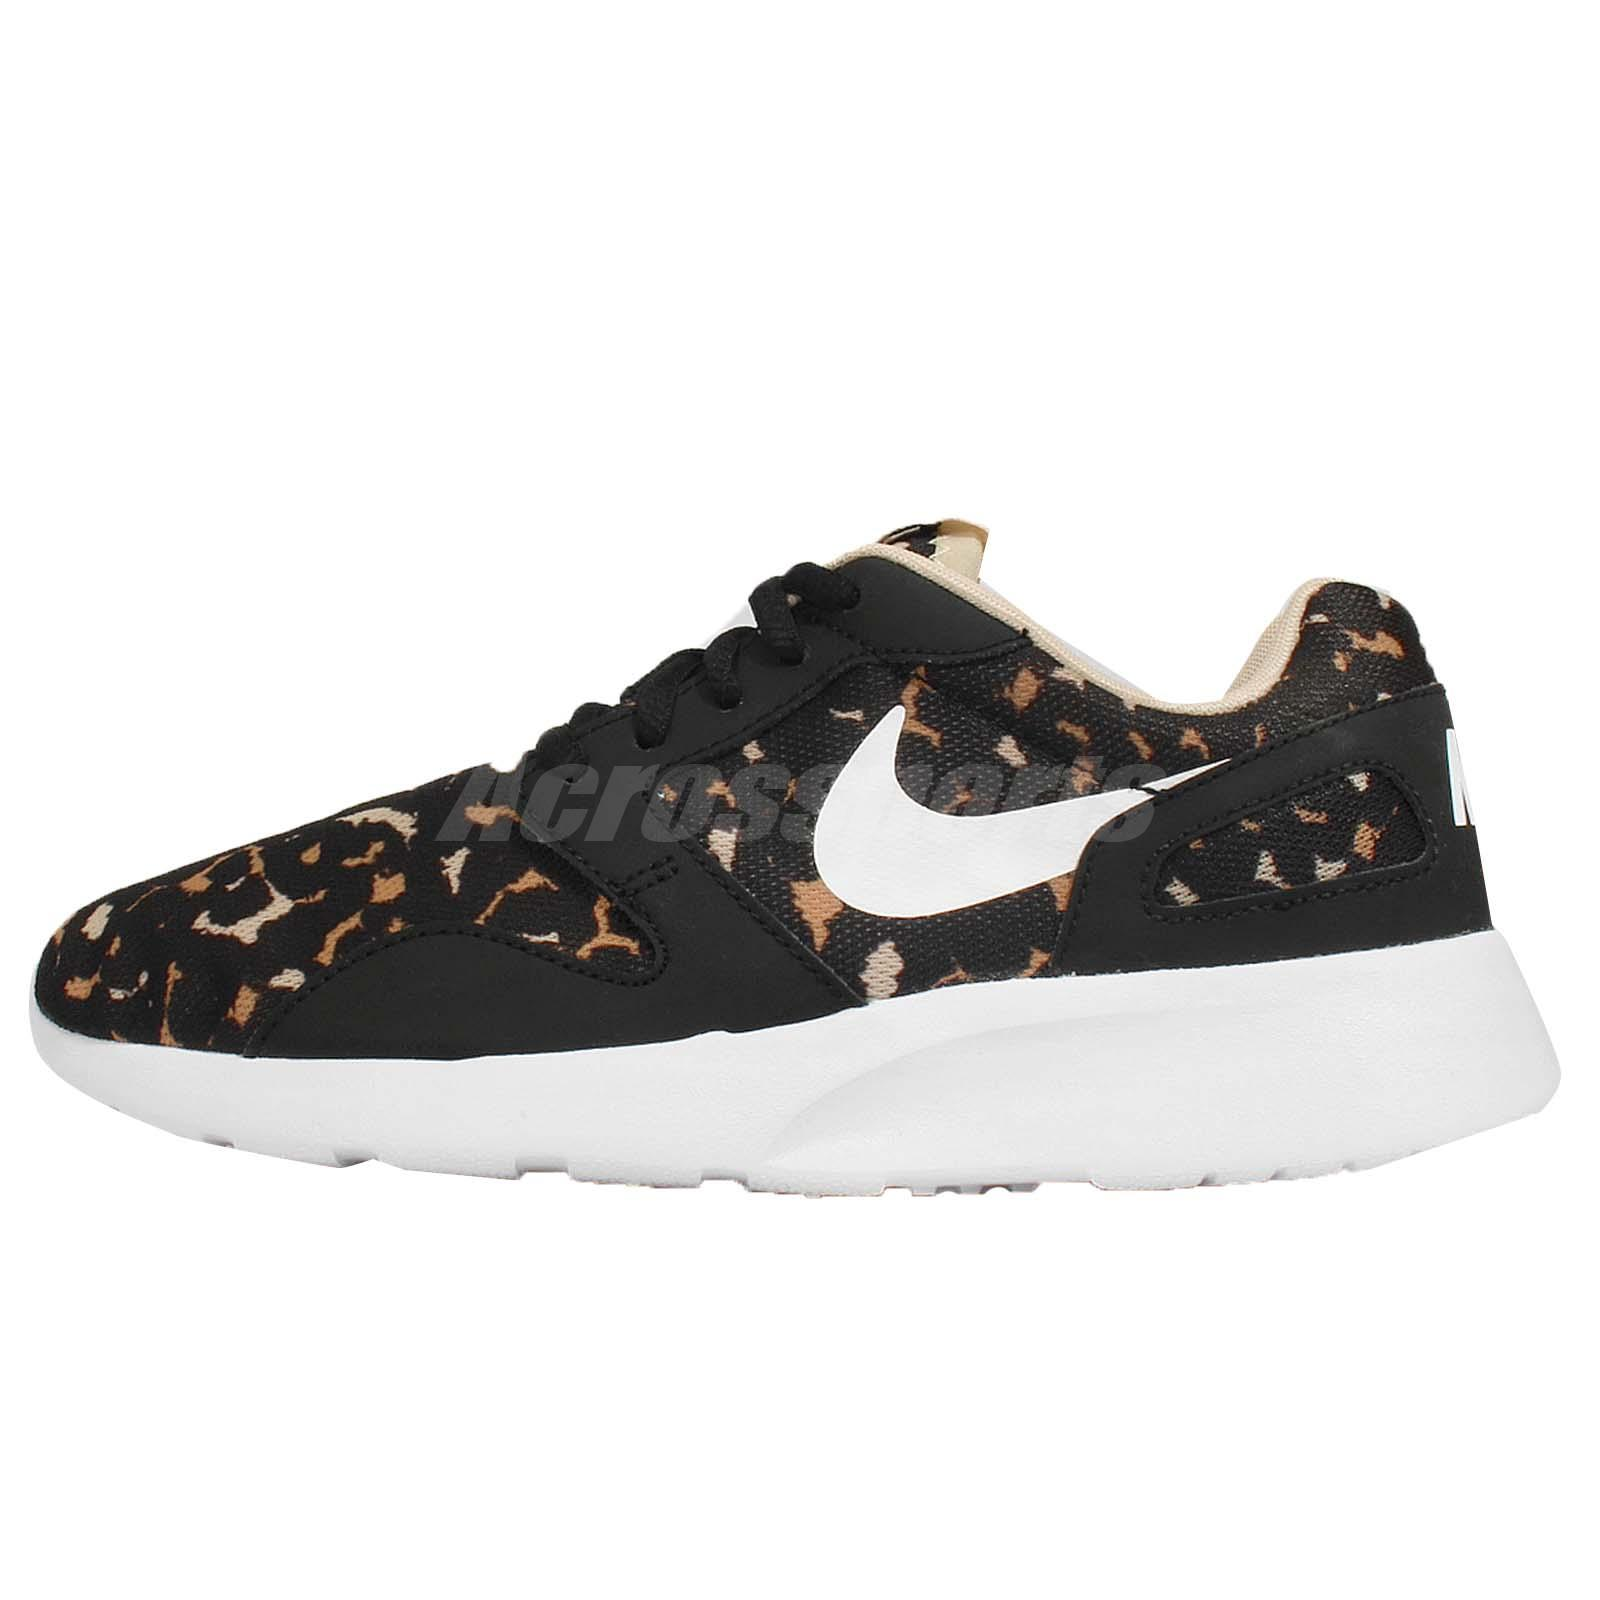 China Made Nike Leopard Shoes For Women Flat Leopard Shoes For Women ... bf4bfdac0162